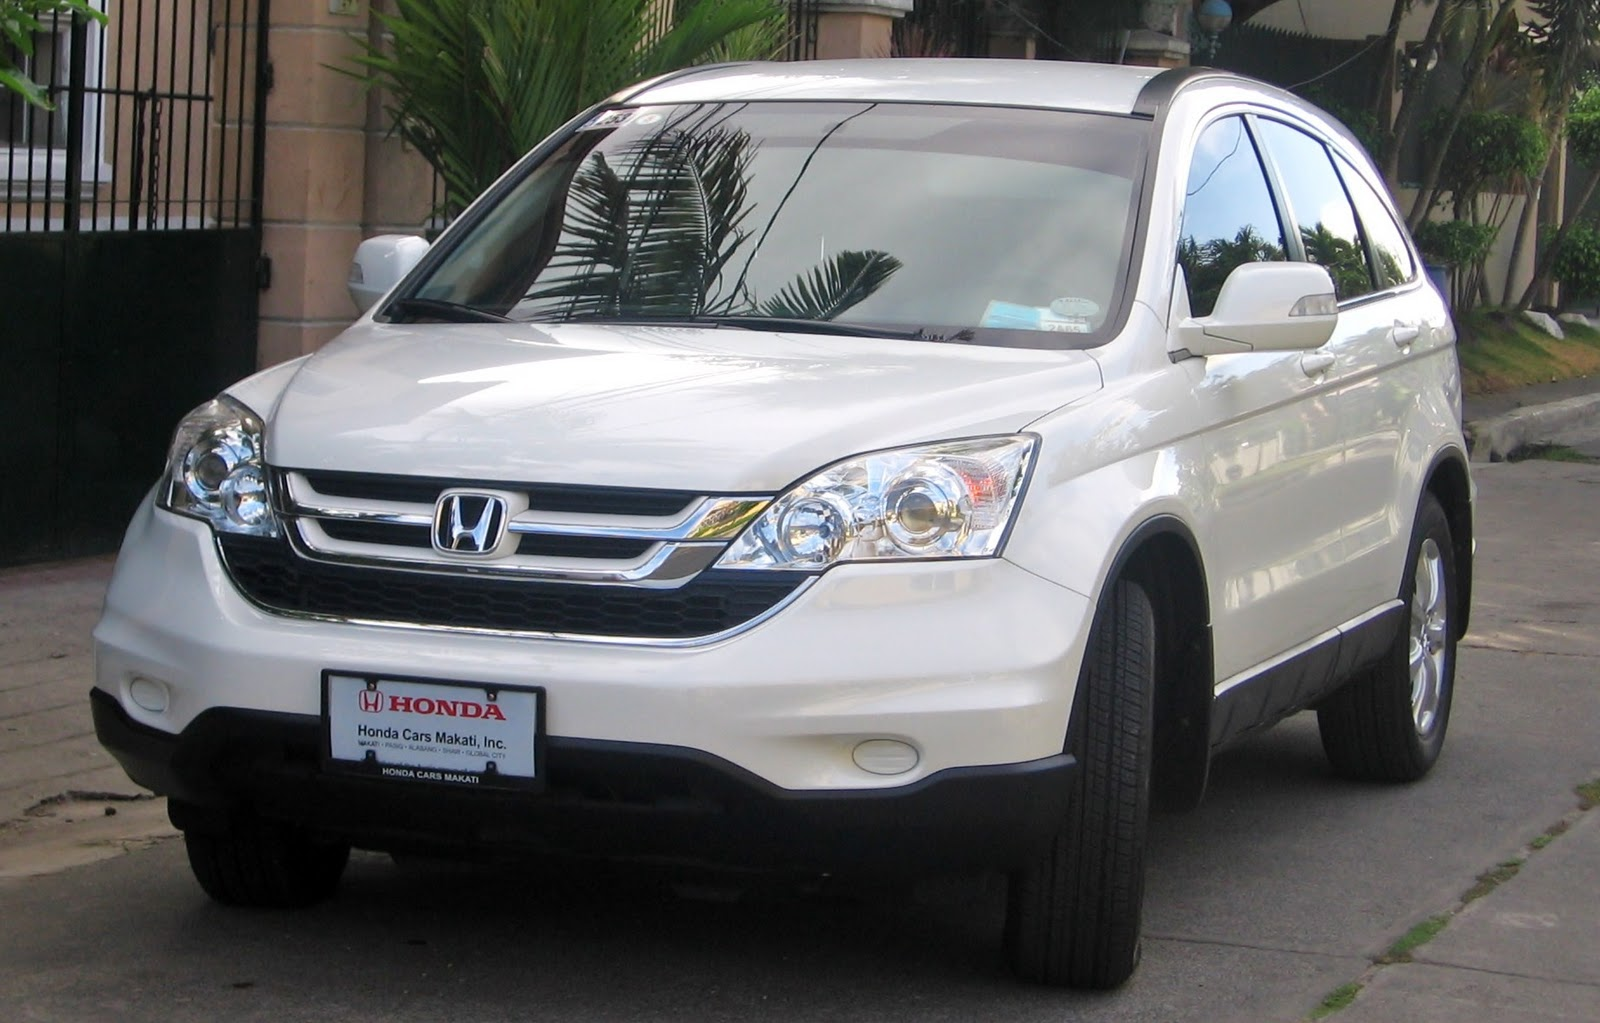 new cars design honda crv cars smoother exterior styling. Black Bedroom Furniture Sets. Home Design Ideas